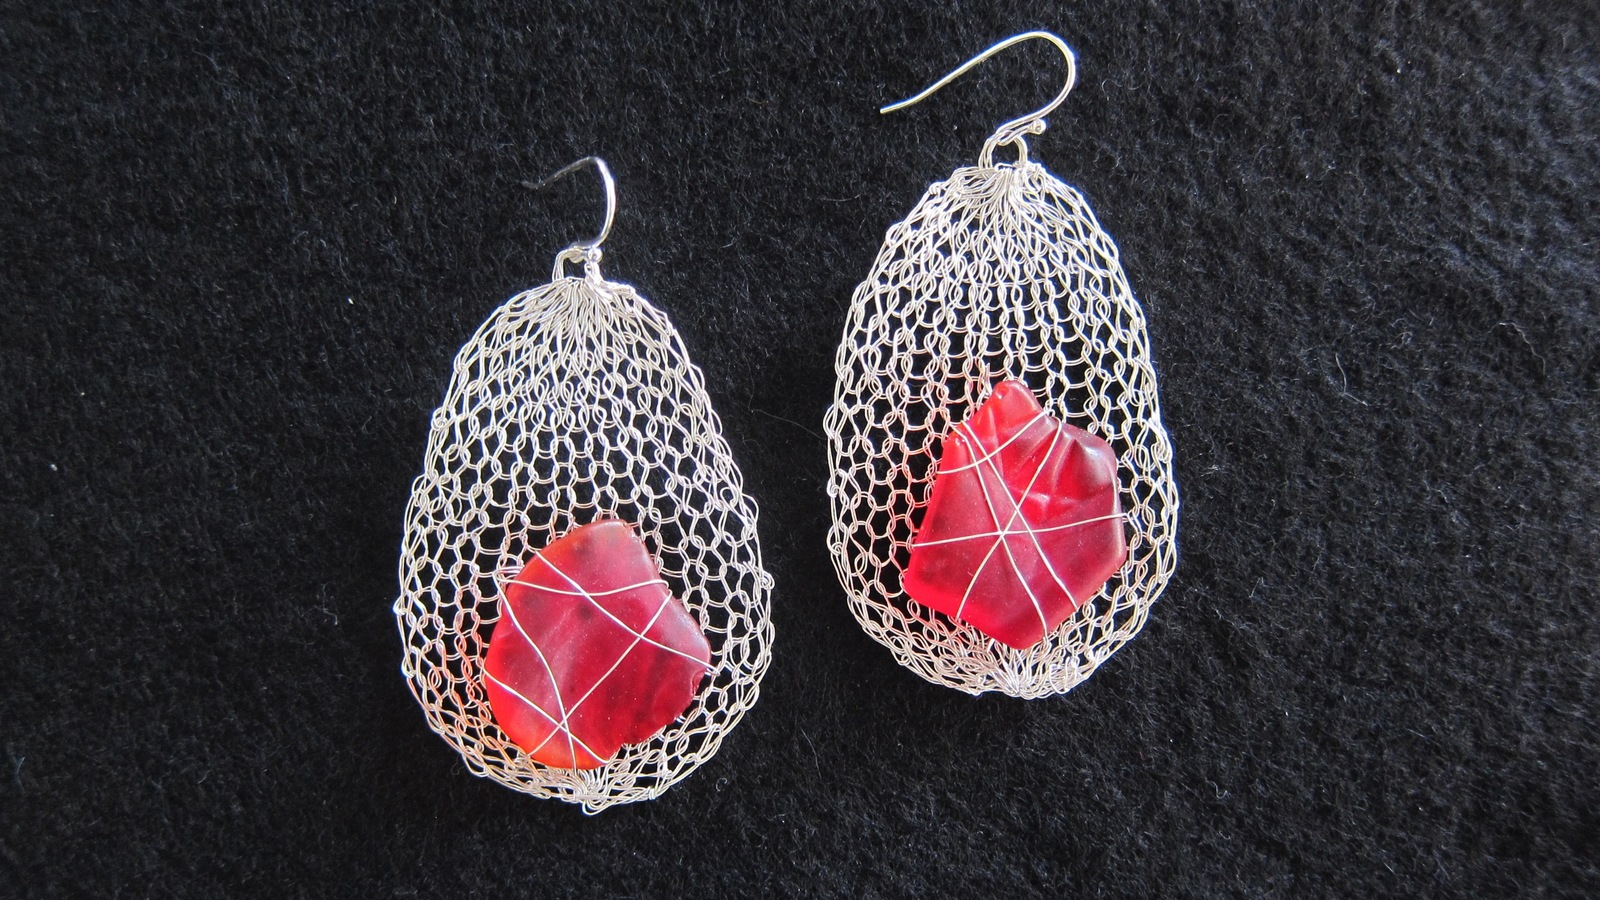 Earrings Seaglass Ovals, red seaglass